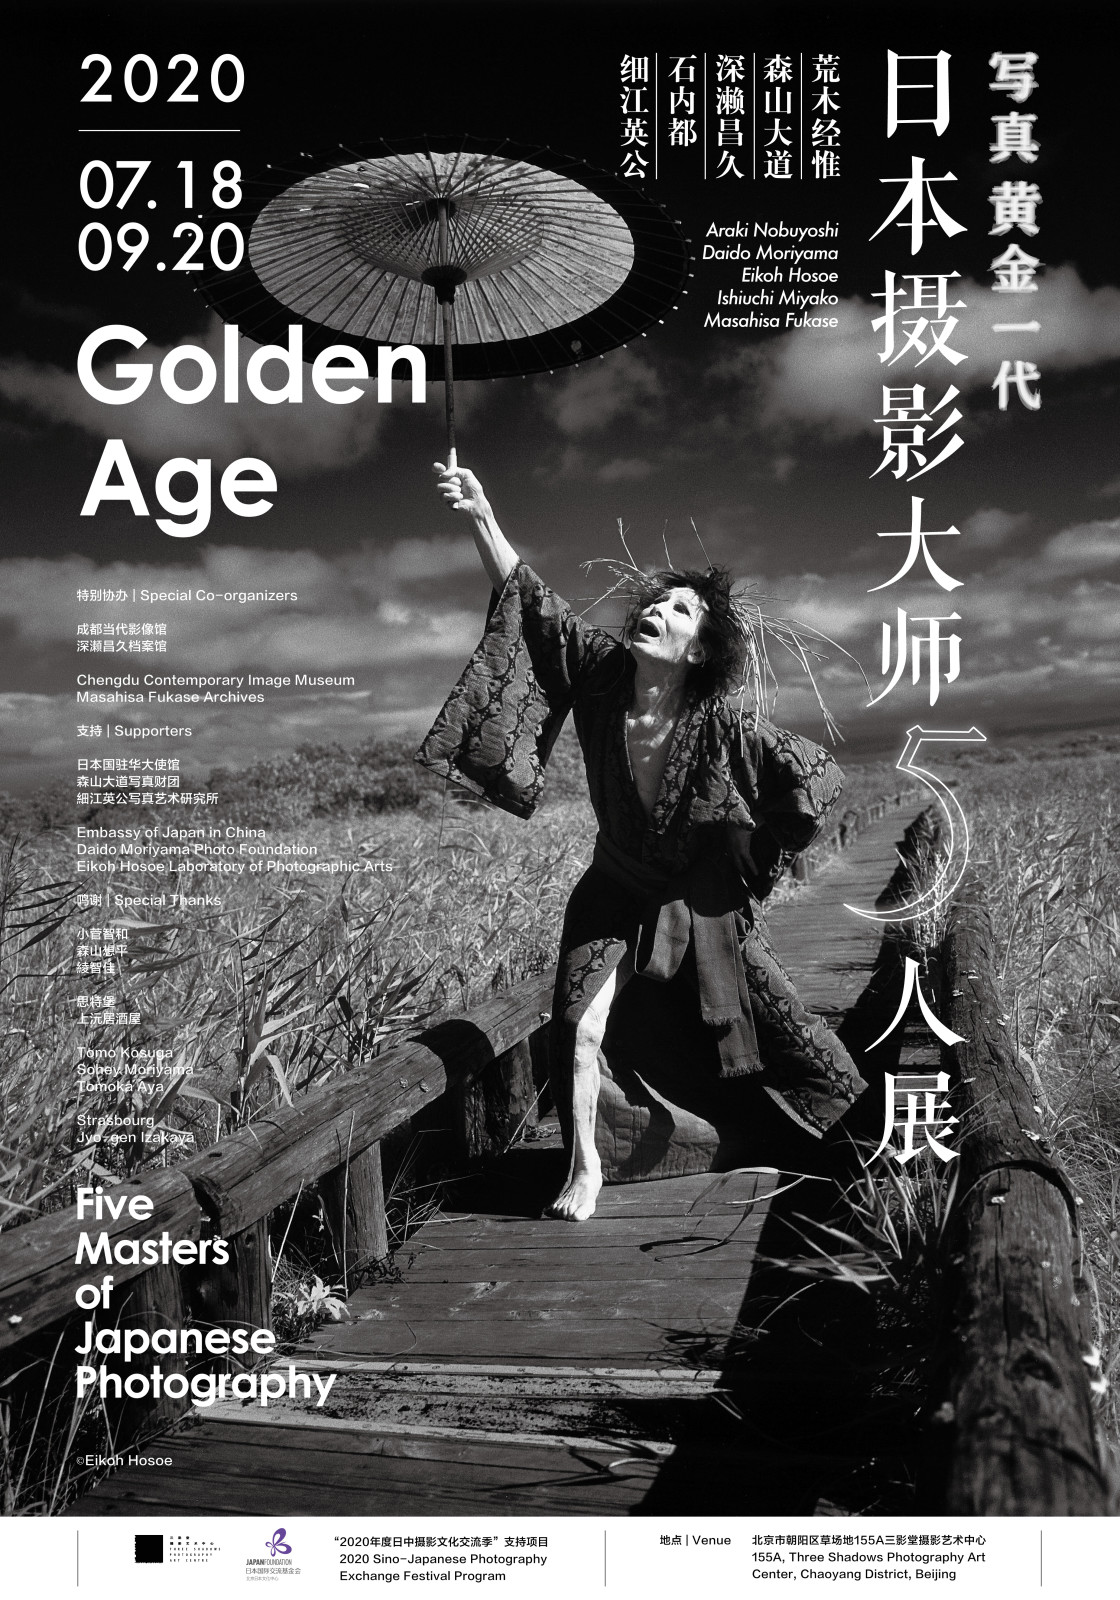 Masters of Japanese Photography